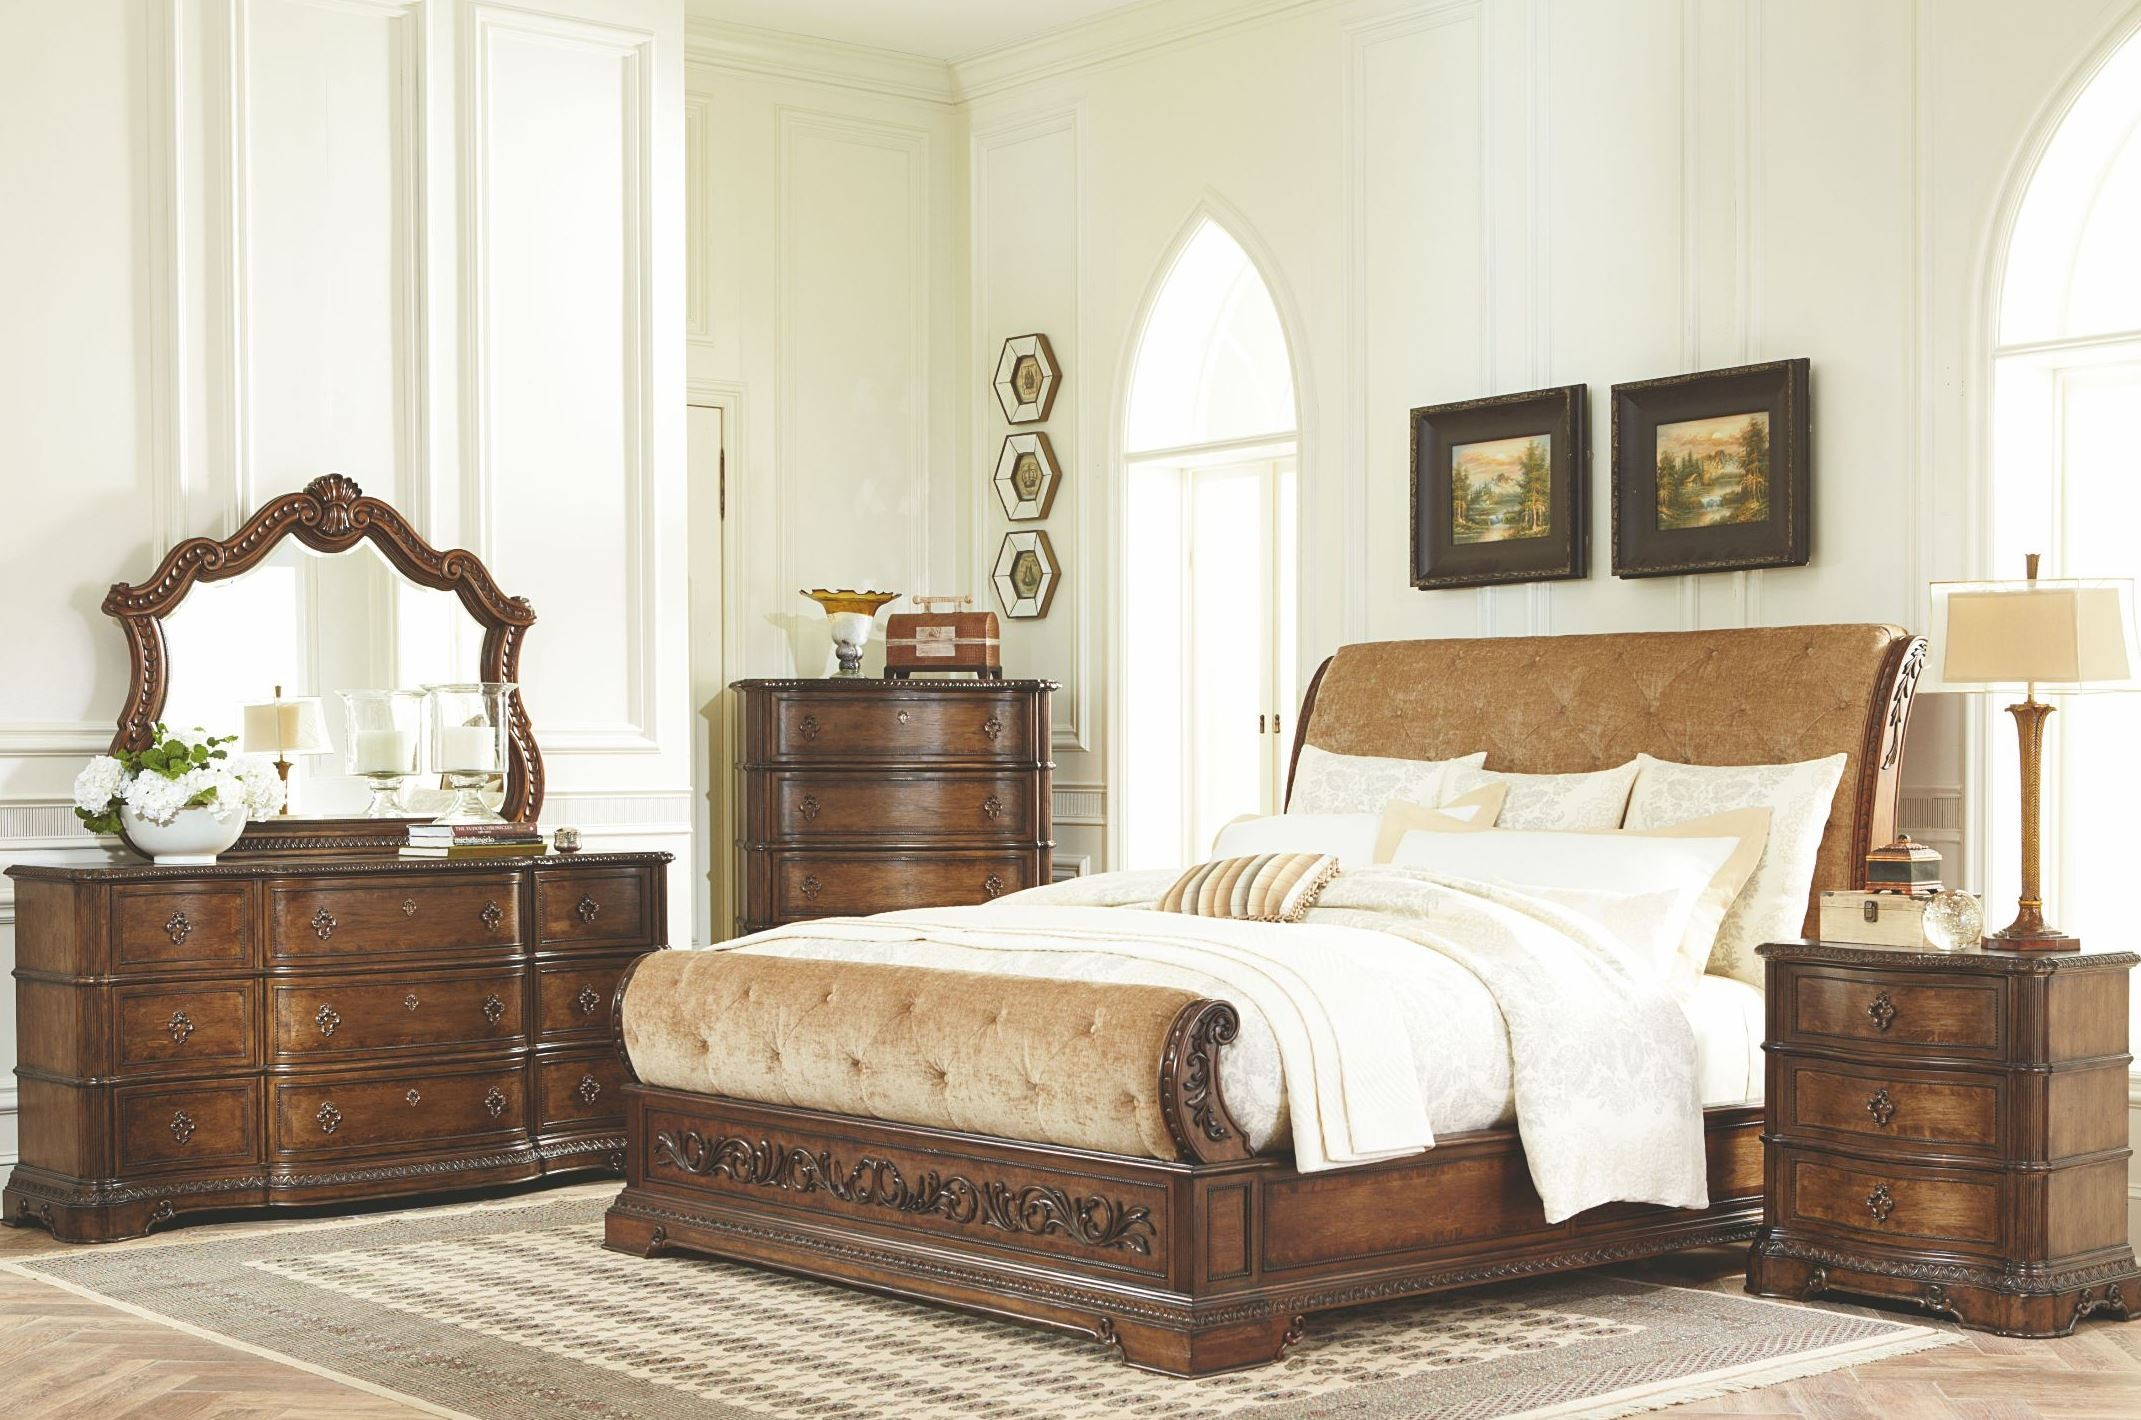 Pemberleigh upholstered sleigh bedroom set from legacy classic 3100 4305k coleman furniture for Upholstered sleigh bedroom set